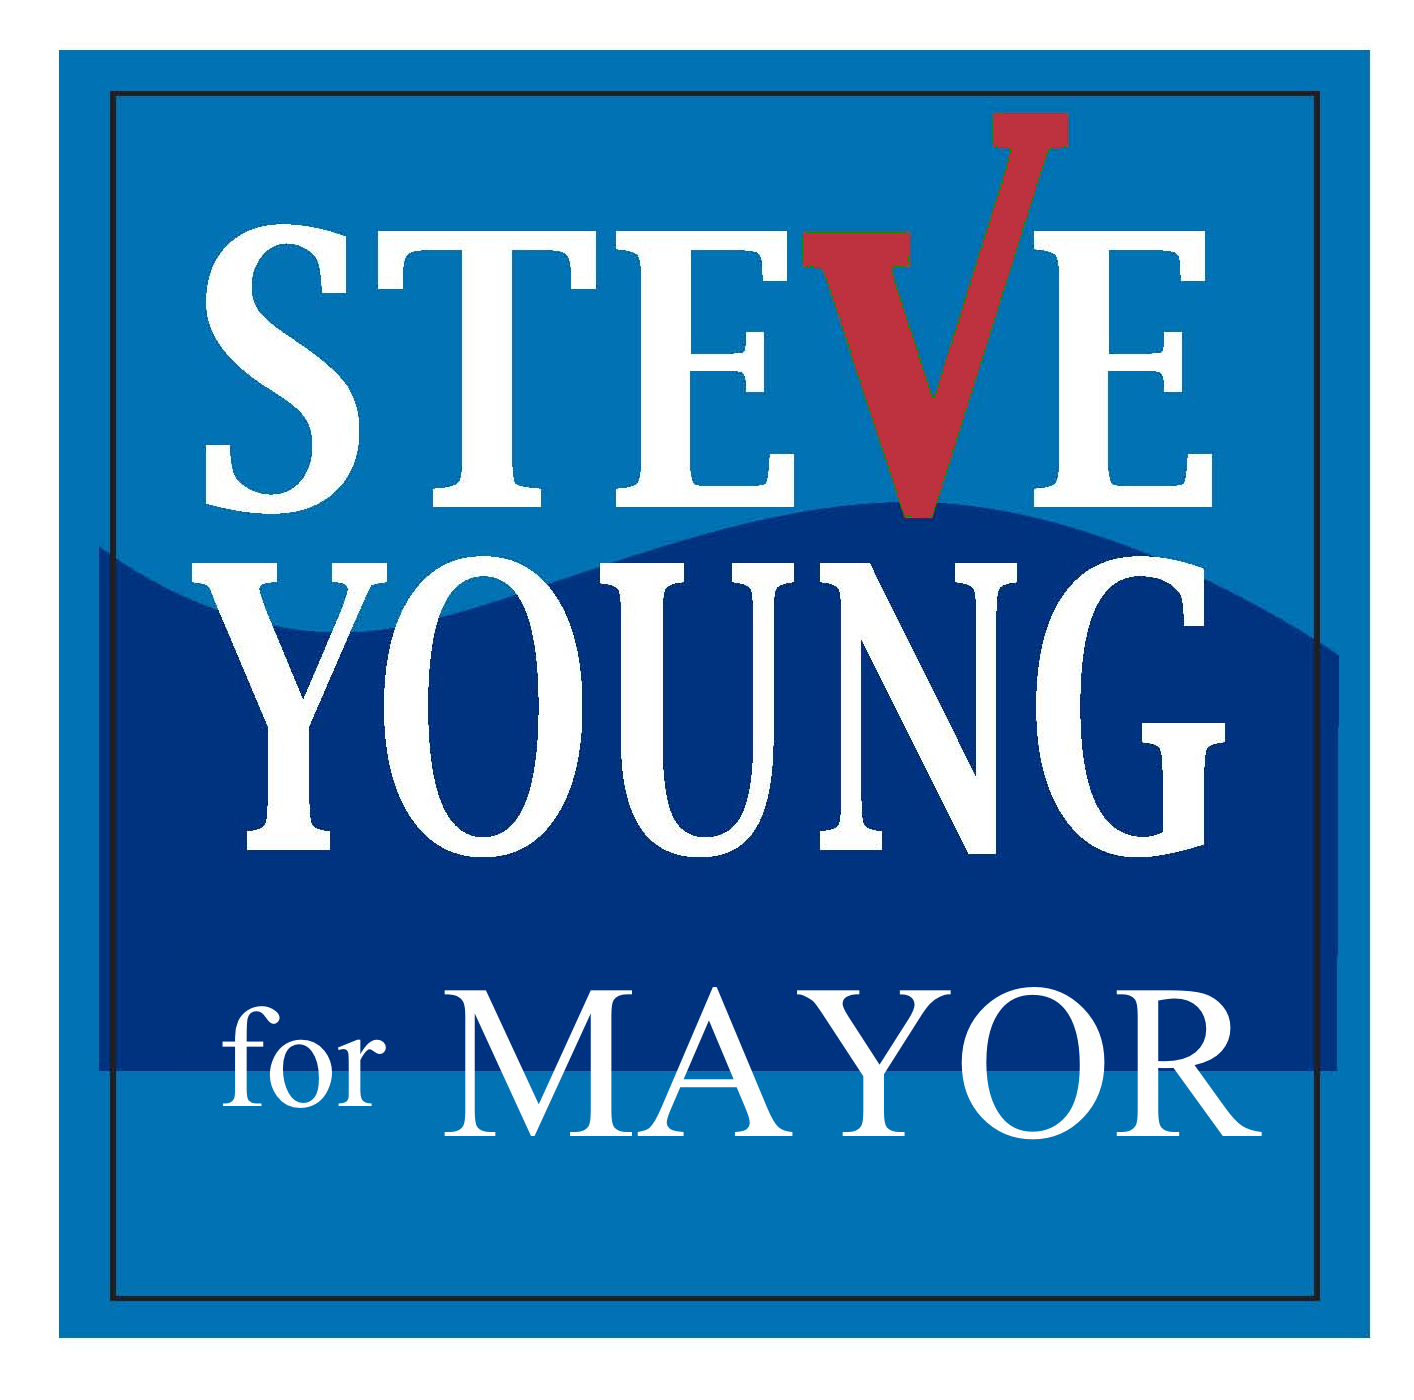 Steve Young for Mayor